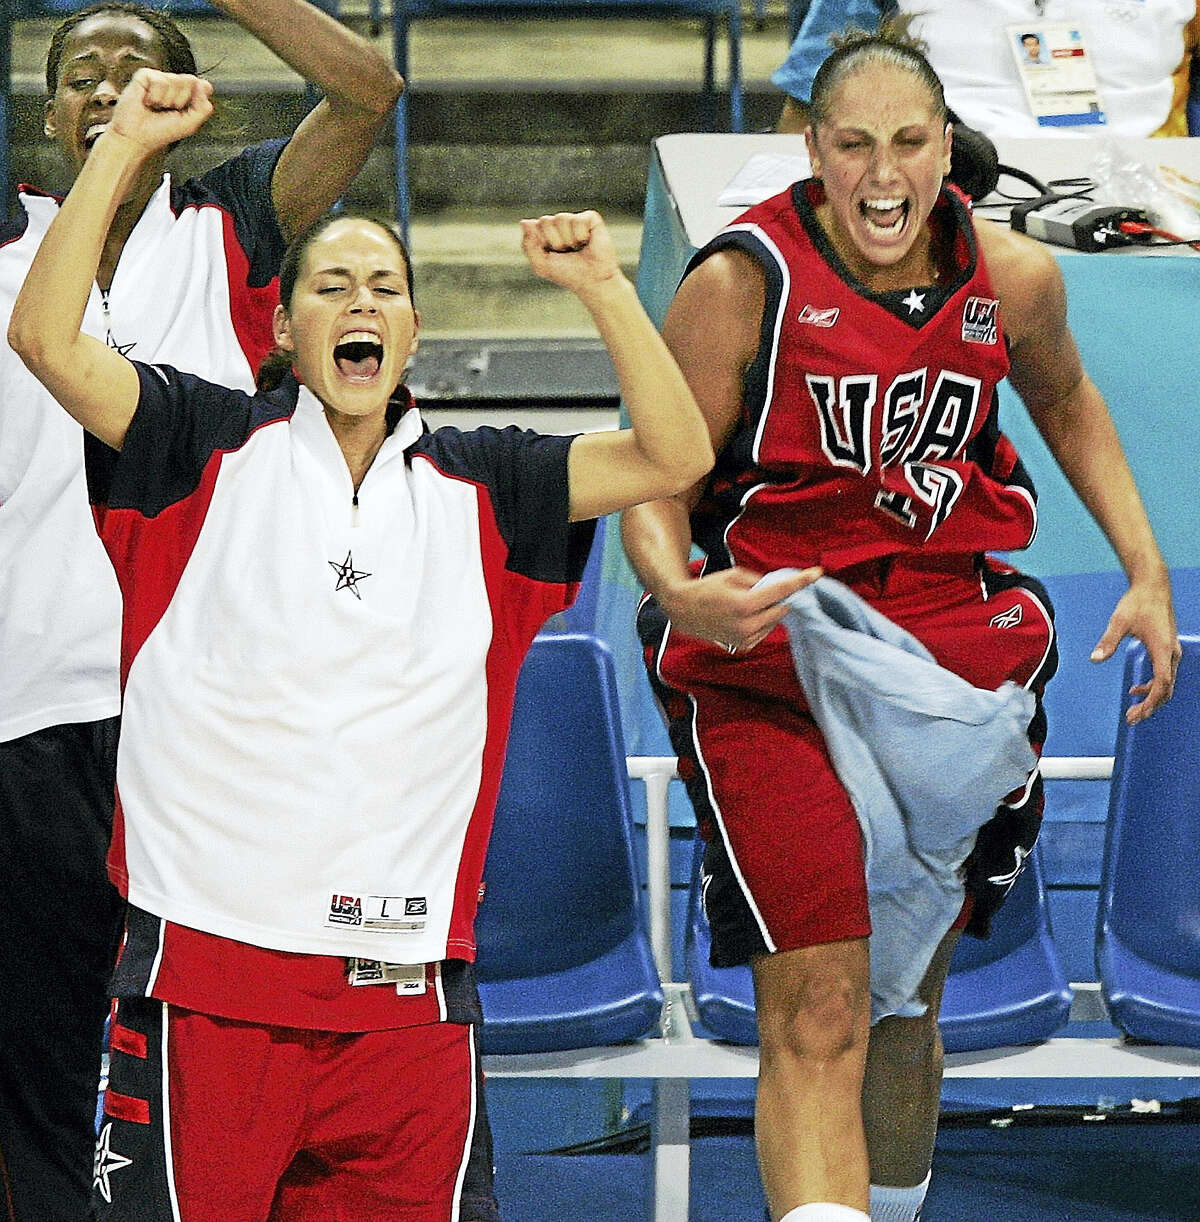 Sue Bird, left, and Diana Taurasi, right, cheer from the bench at the 2004 Olympic Games in Athens.